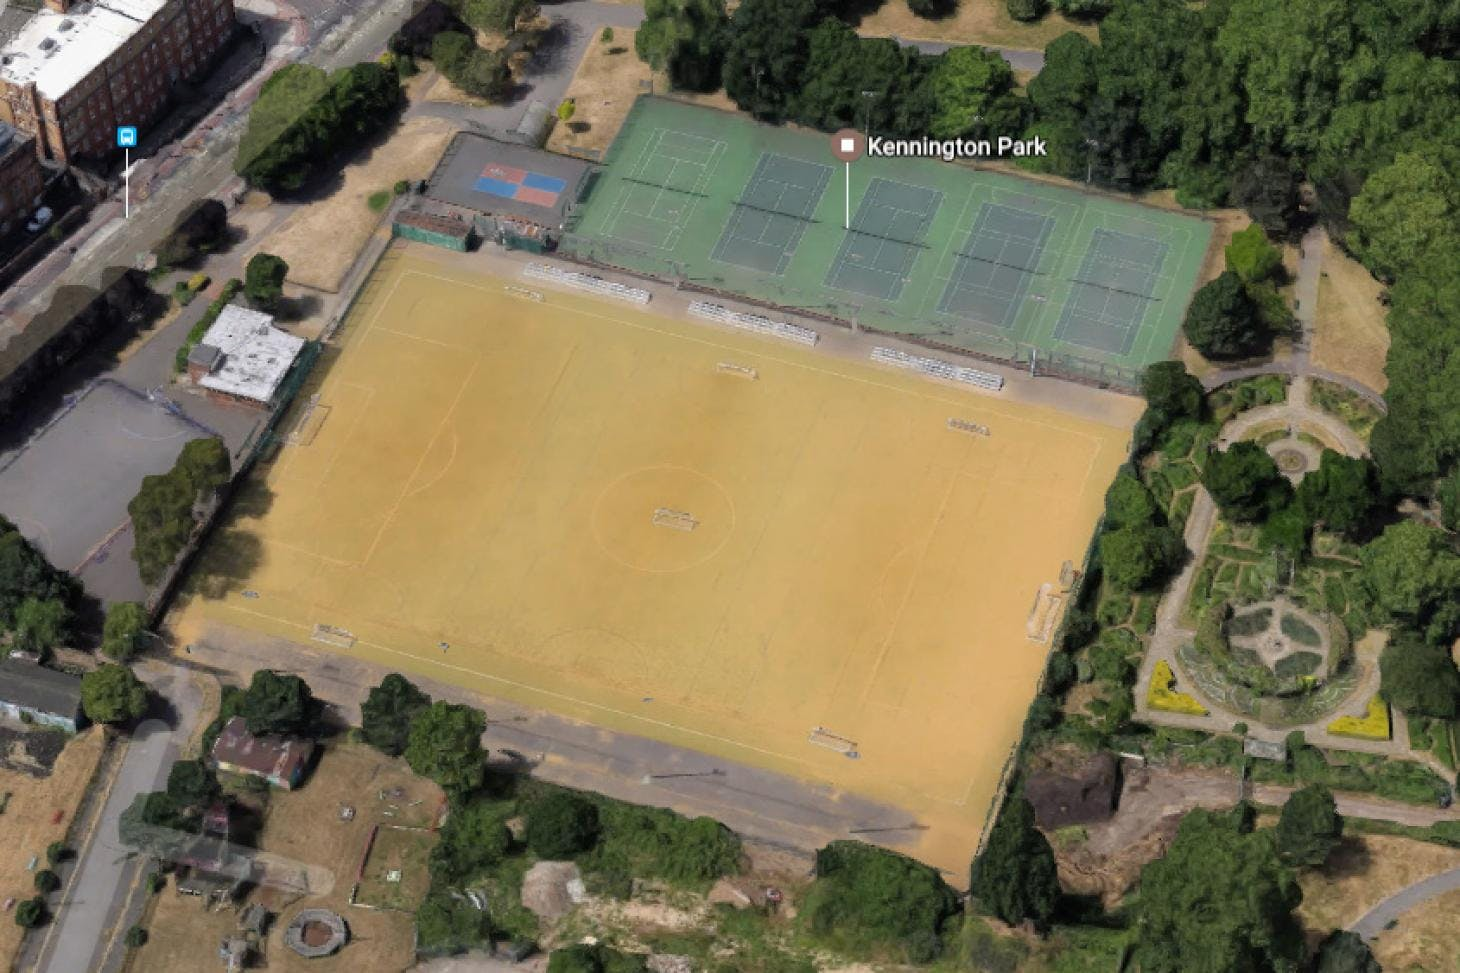 Kennington Park Outdoor | Hard (macadam) tennis court